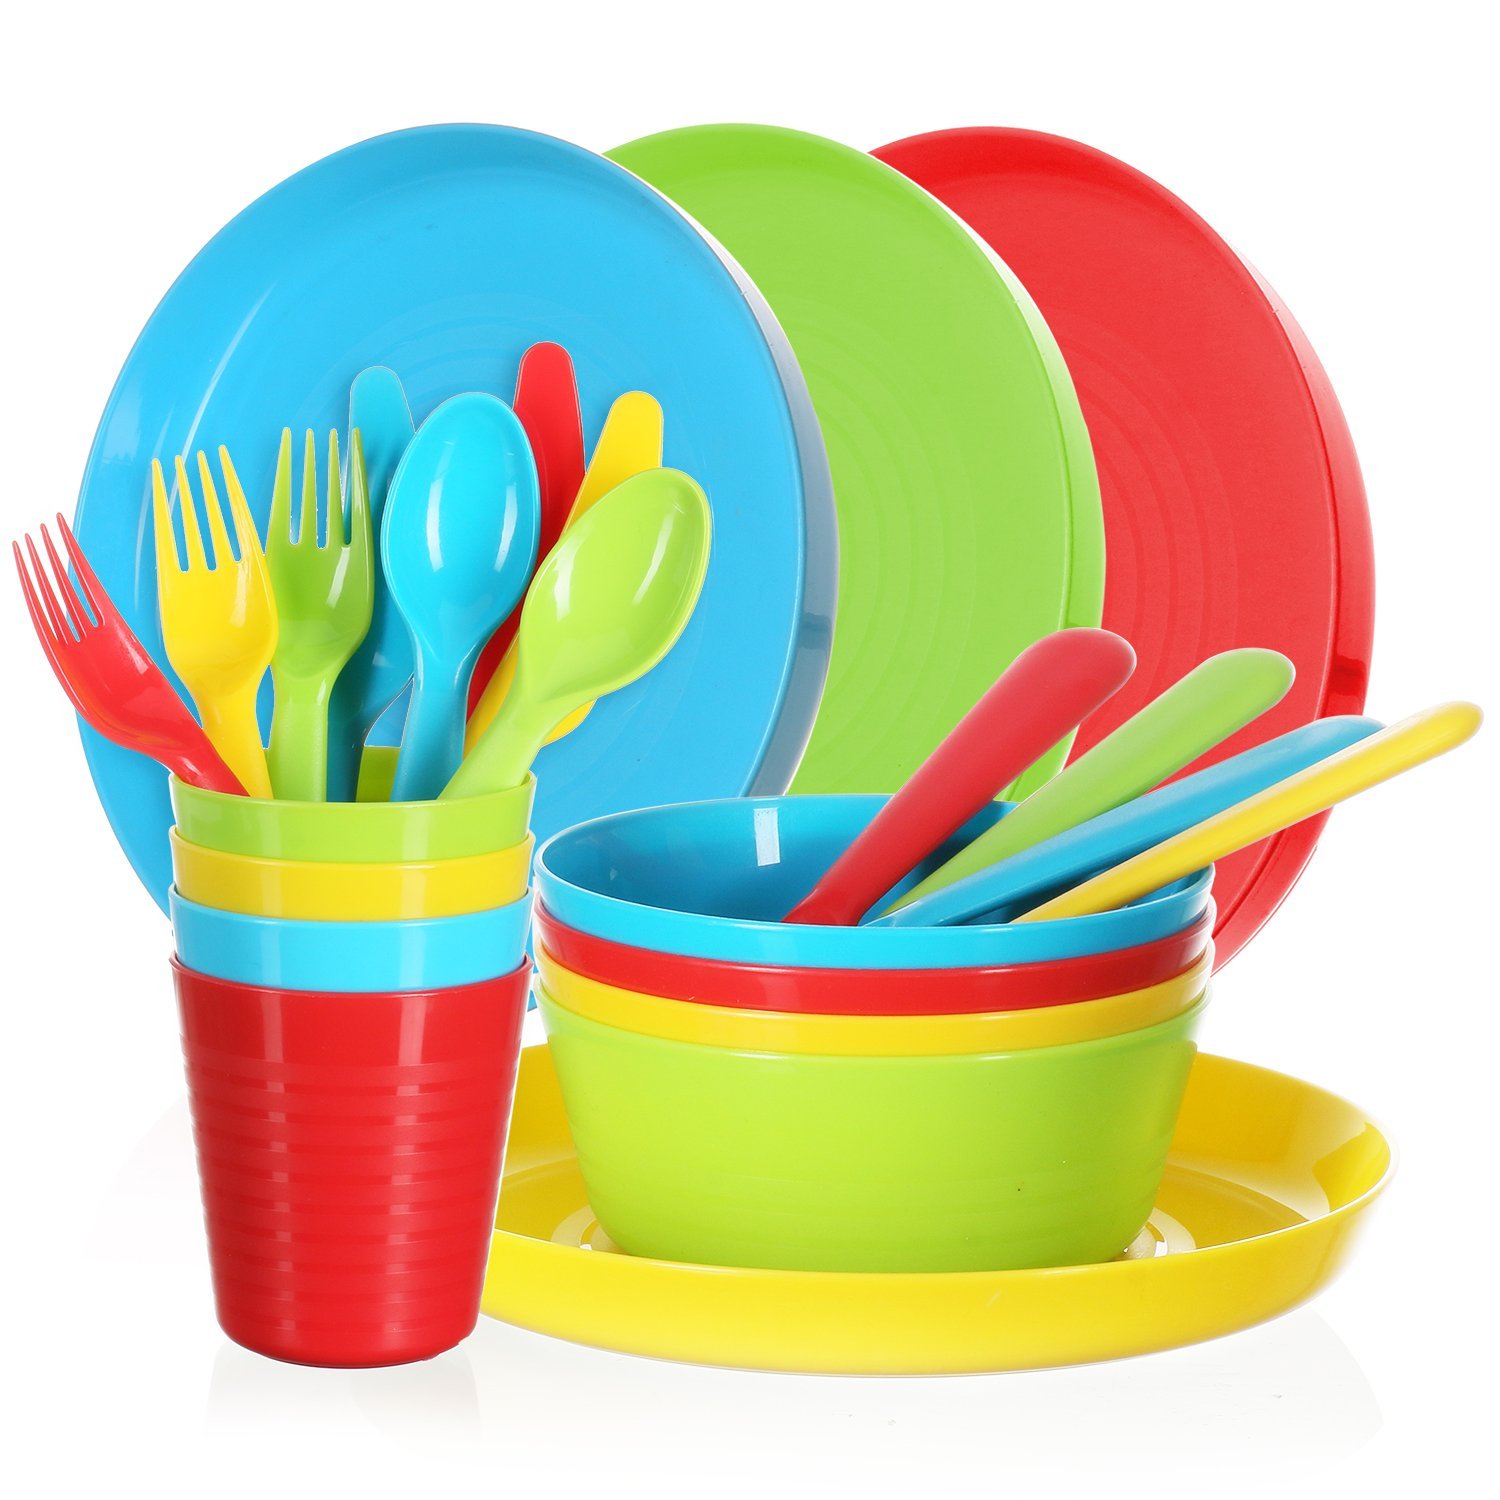 Complete Plastic Dinnerware Cutlery Set - 24 Piece Bright Durable Utensils Dinner Ware for Toddlers & Kids, 4 Plates, Bowls, Cups, Knives, Spoons and Forks - BPA-free, Dishwasher & Mic